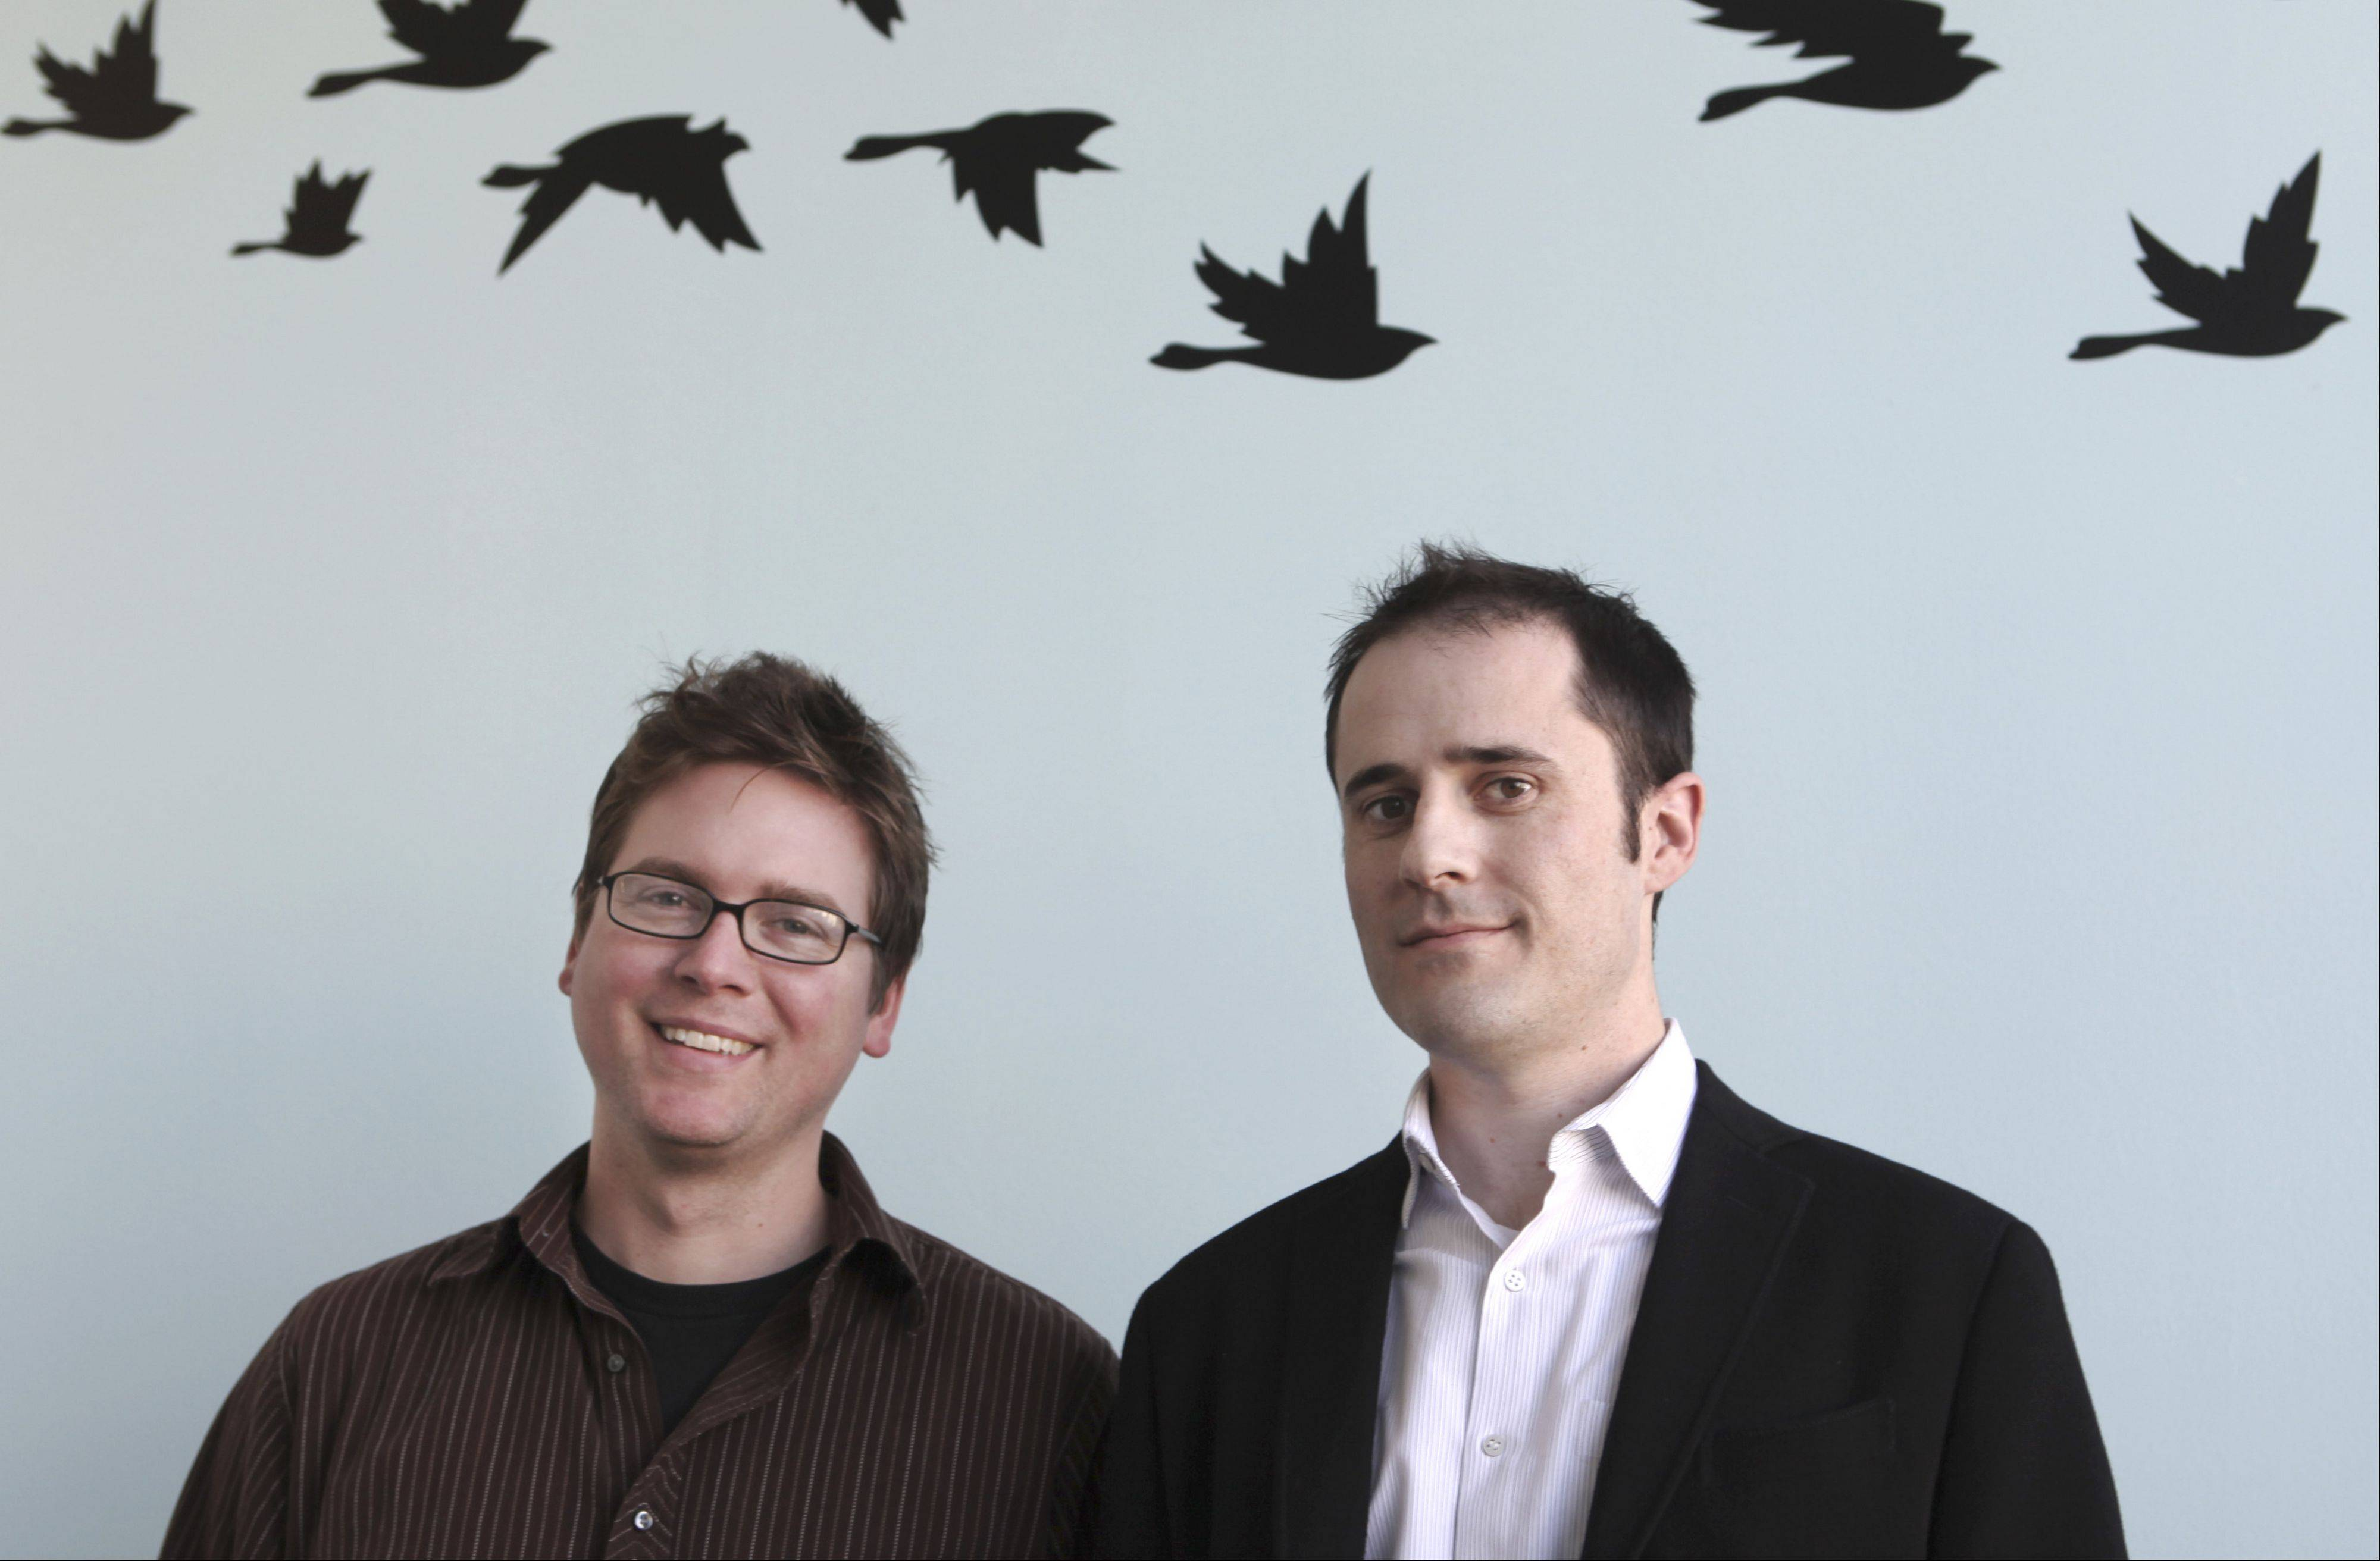 Twitter founders Biz Stone, left, and Evan Williams.Twitter faces skepticism from potential investors and the broader public ahead of its initial public offering, according to an Associated Press-CNBC poll released Monday.